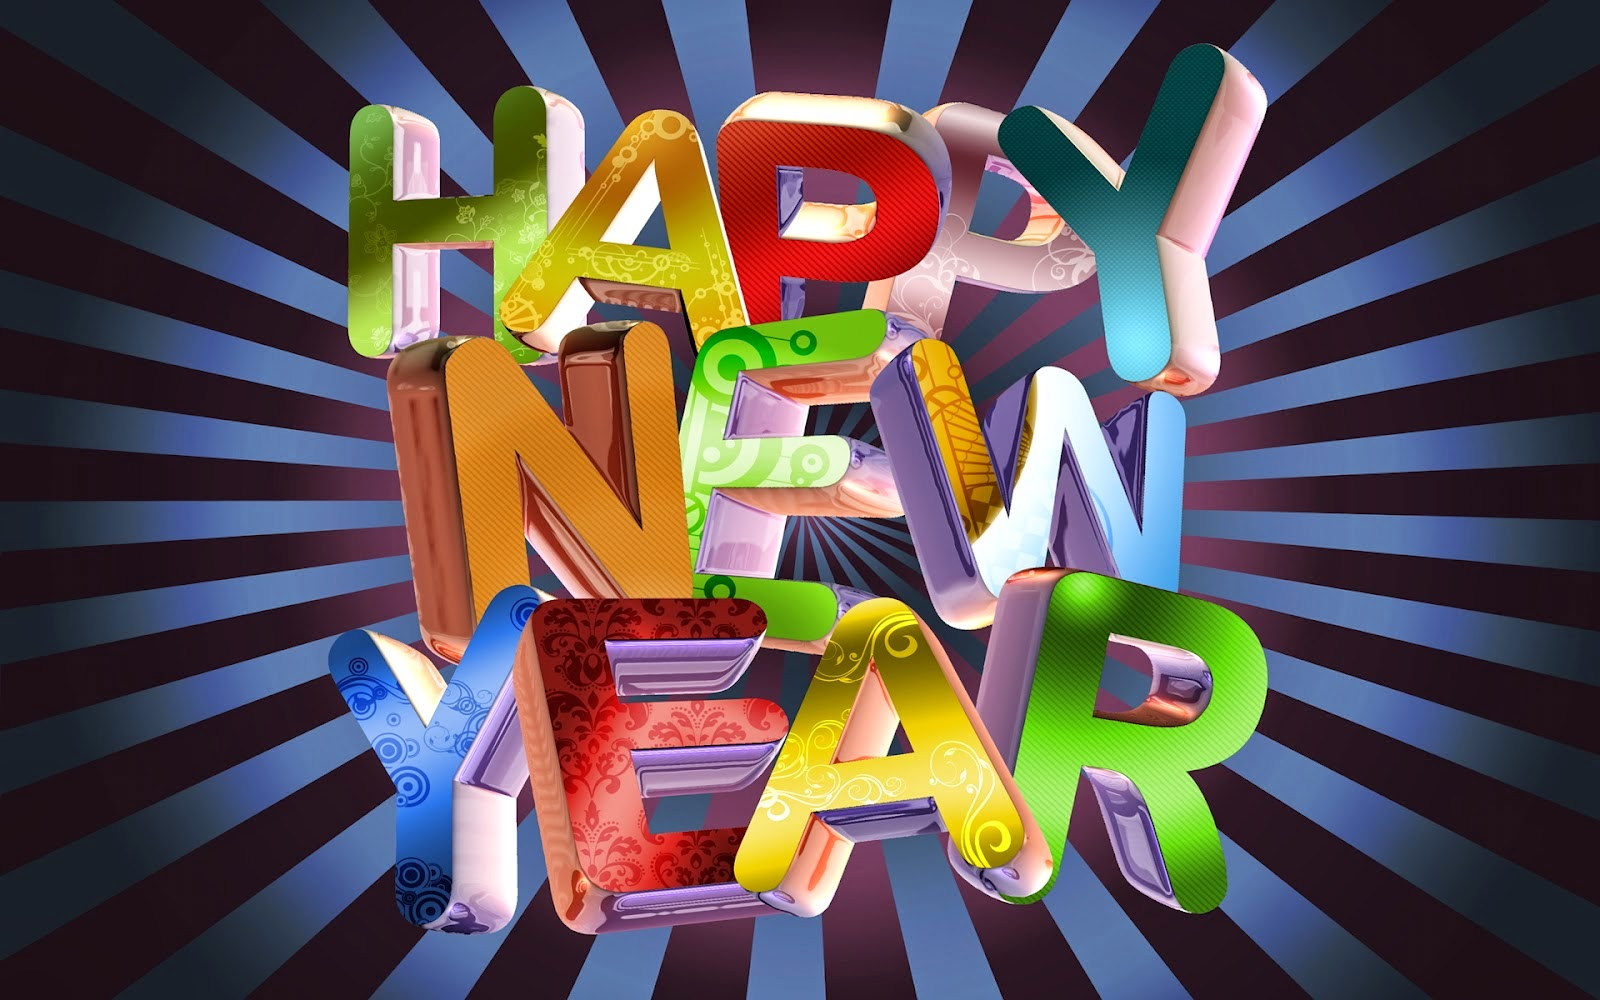 Corporate Happy New Year 2016 Wishes Wallpapers